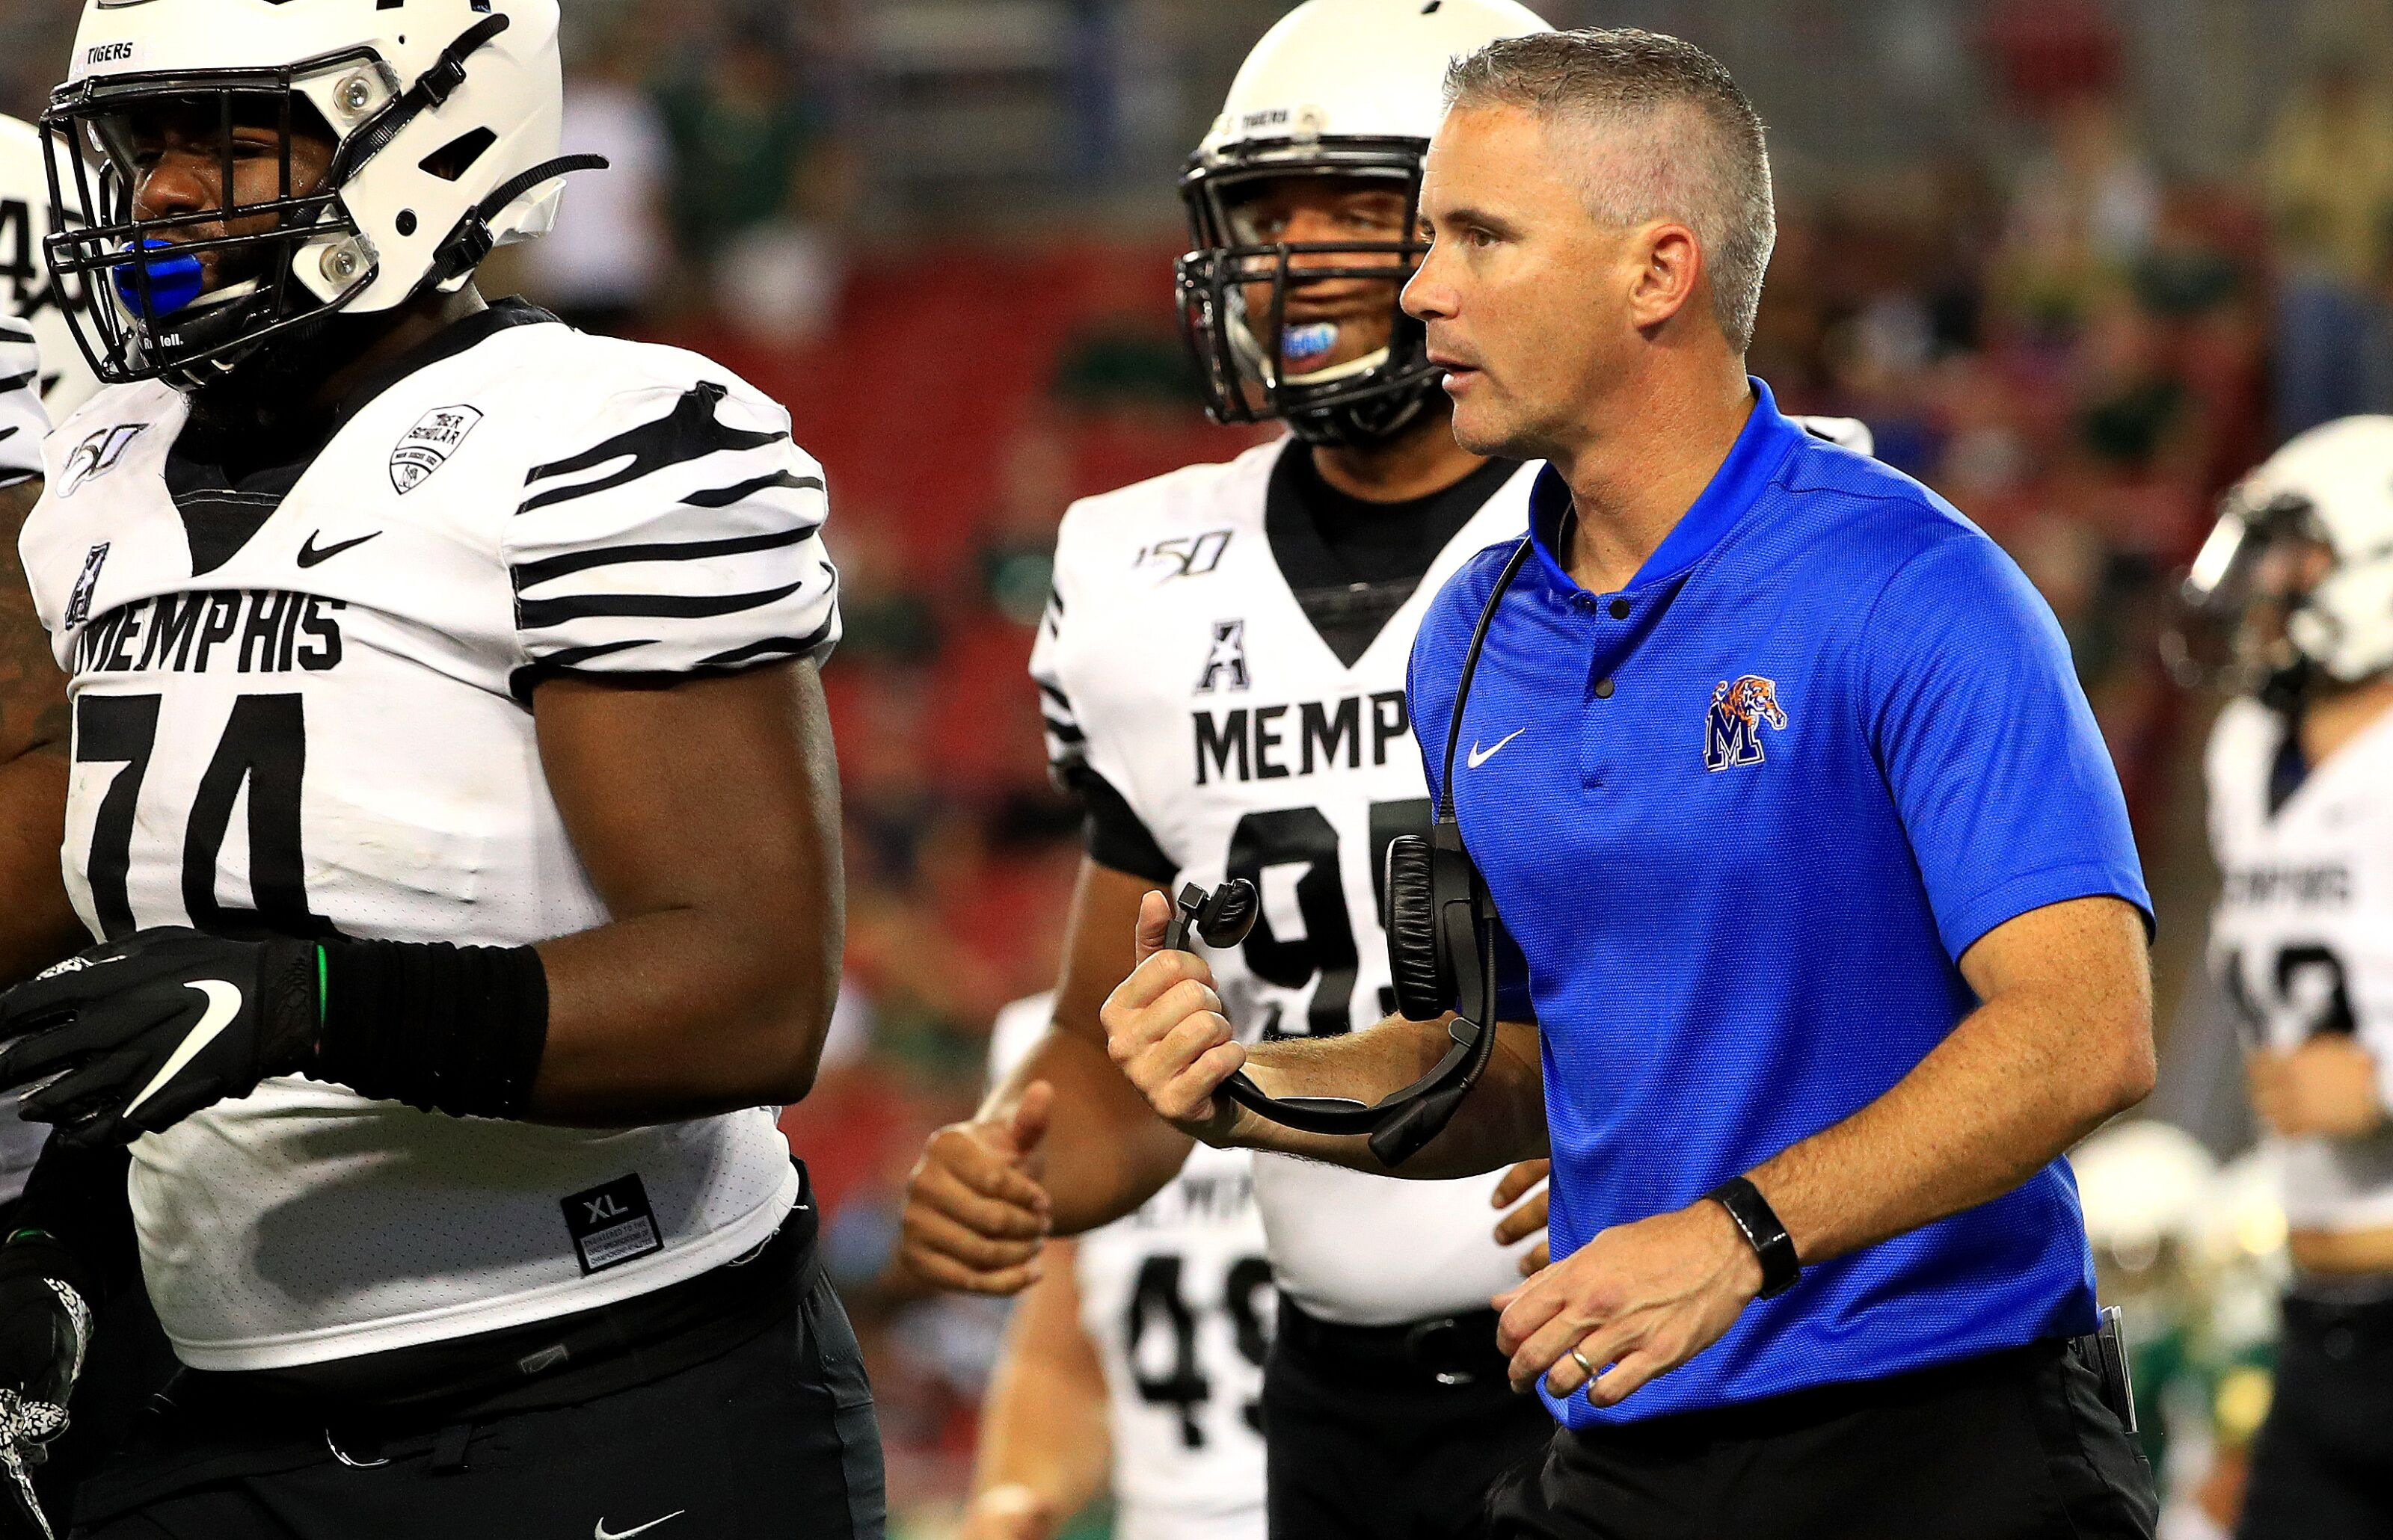 Memphis wins American to clinch Cotton Bowl, but loses Mike Norvell to Florida State